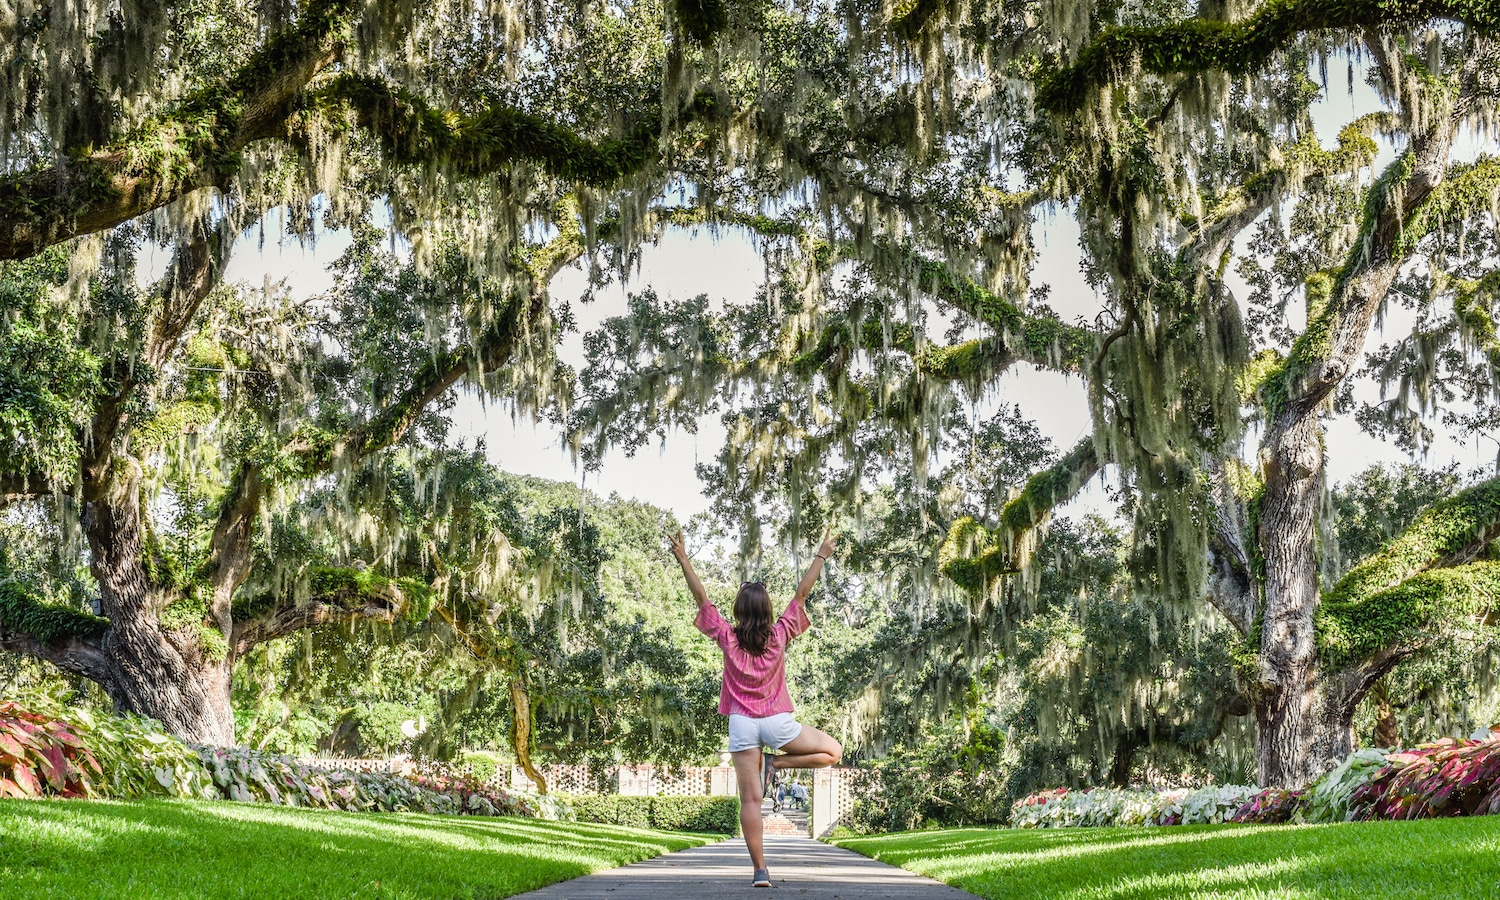 Top Things To Do In Myrtle Beach l Stay Well & Have Fun : Epicure ...